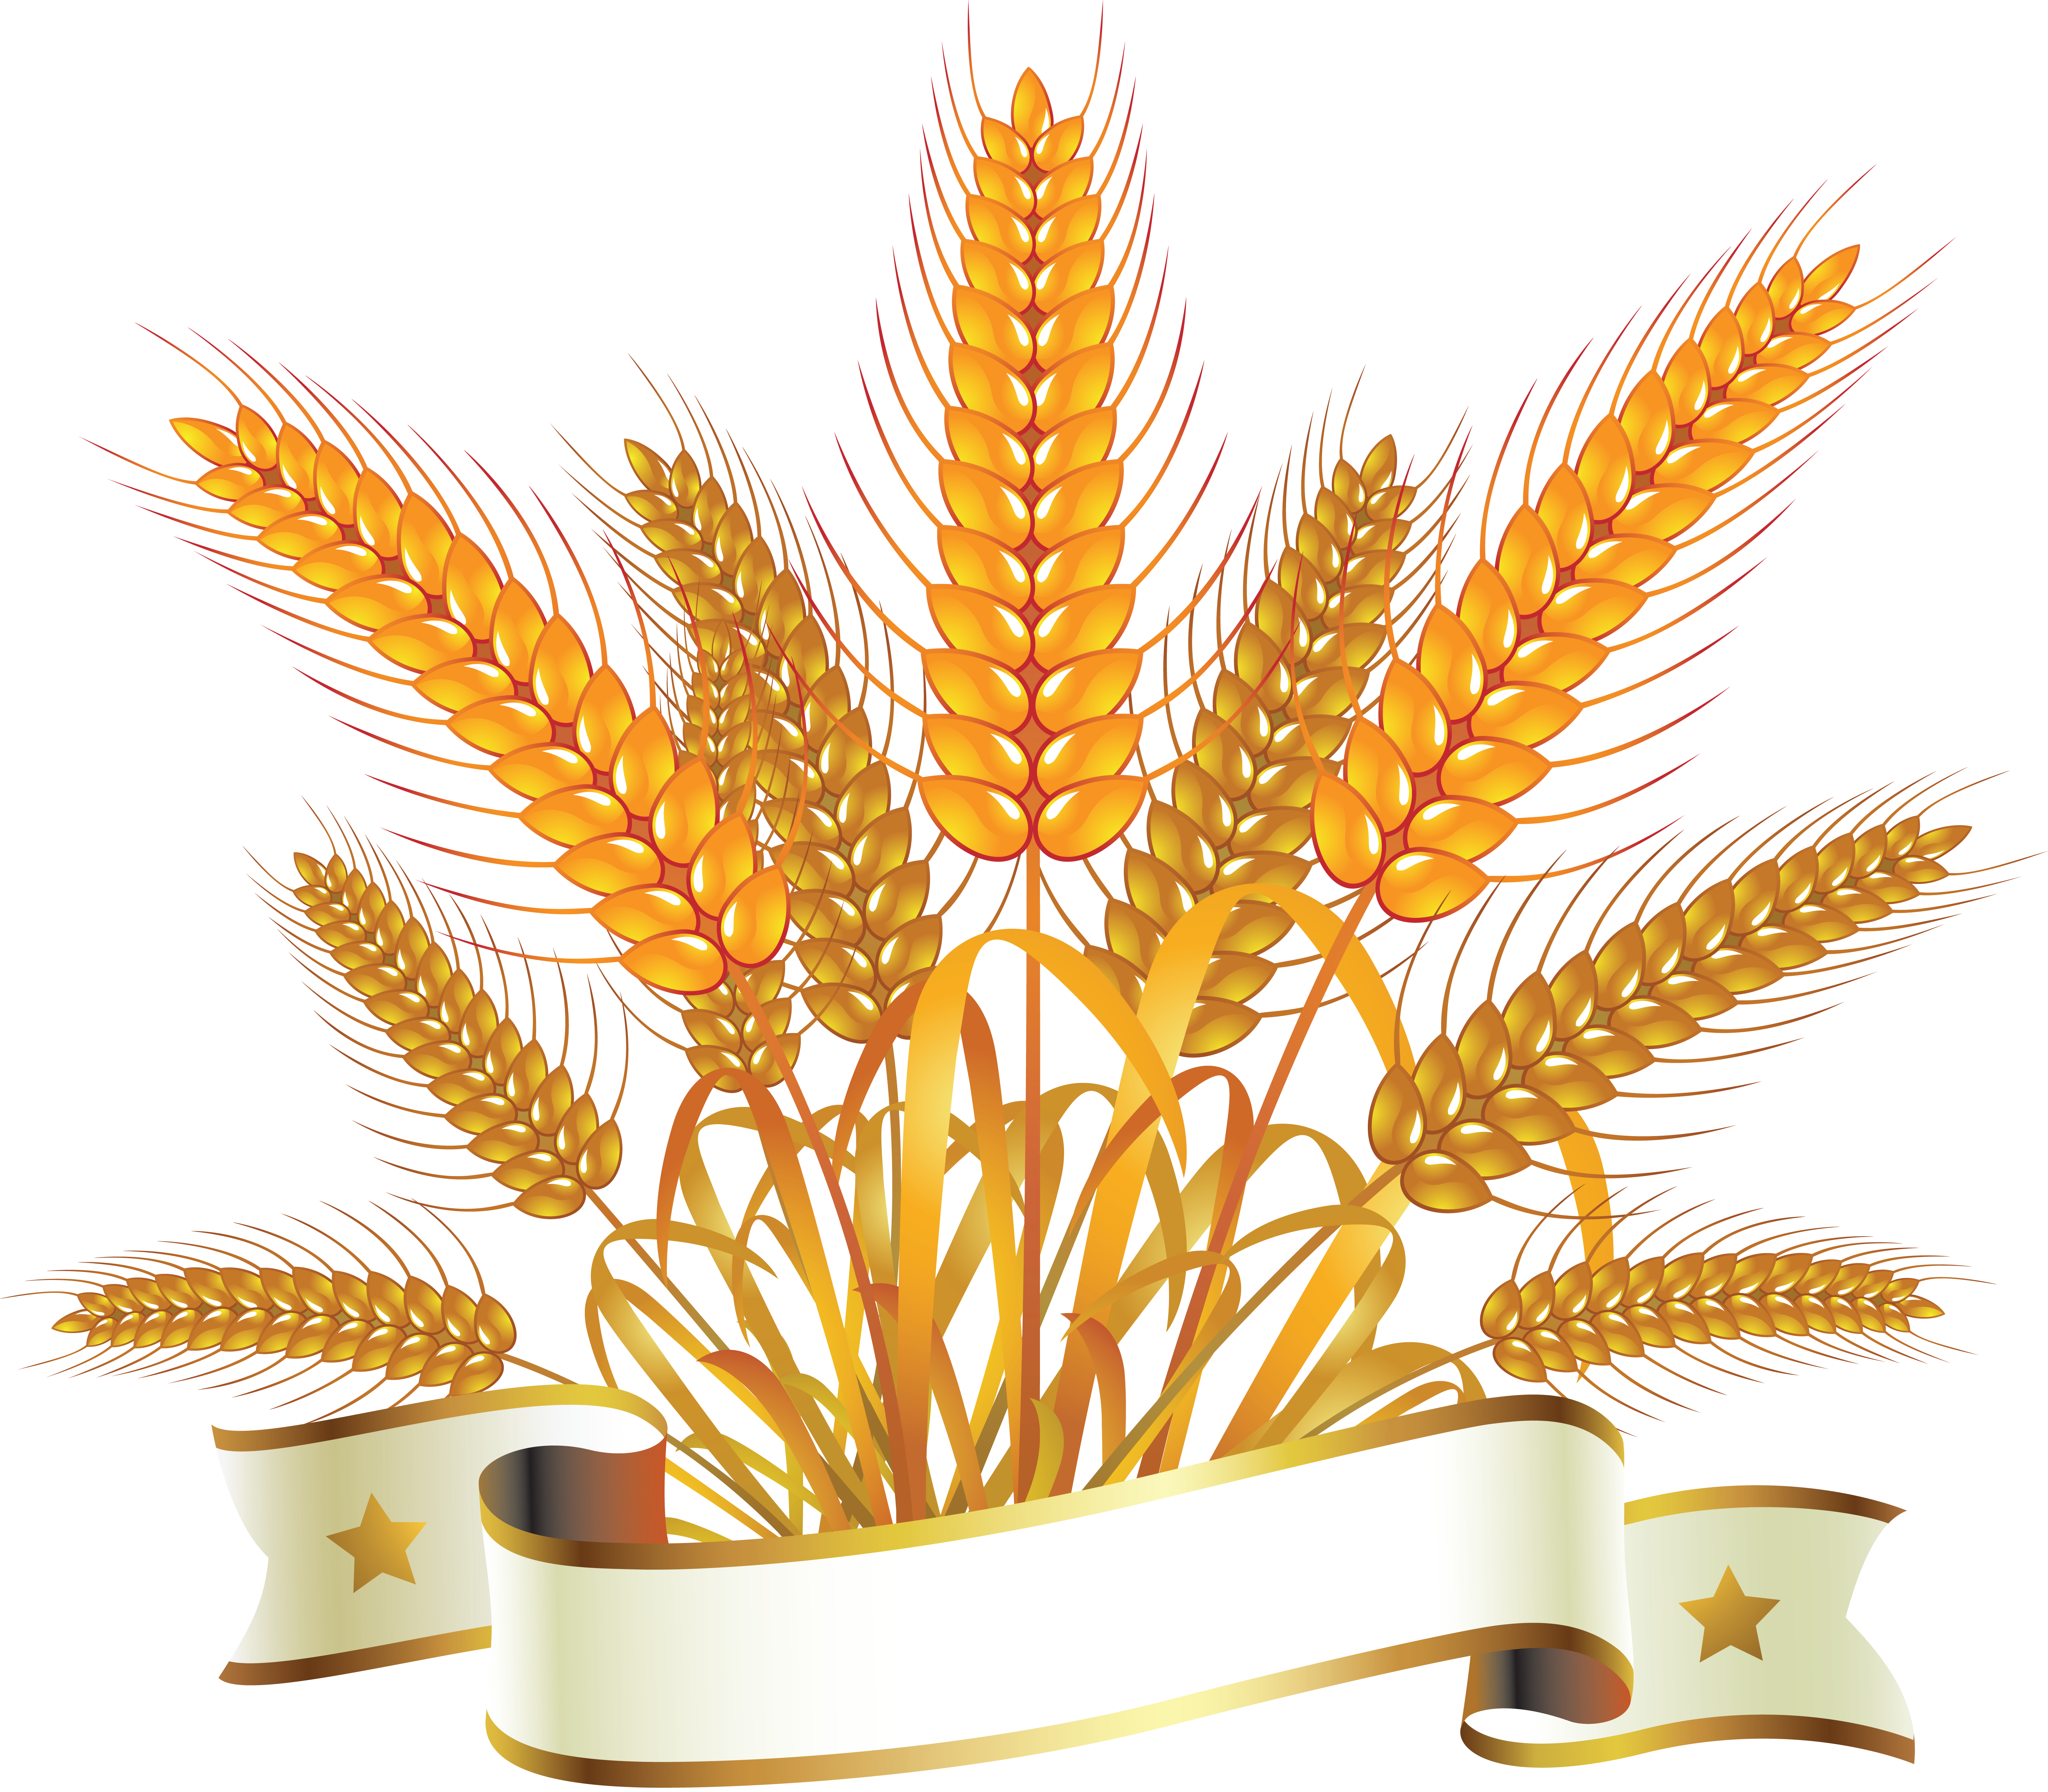 banner freeuse download Png image purepng free. Wheat clipart crop production